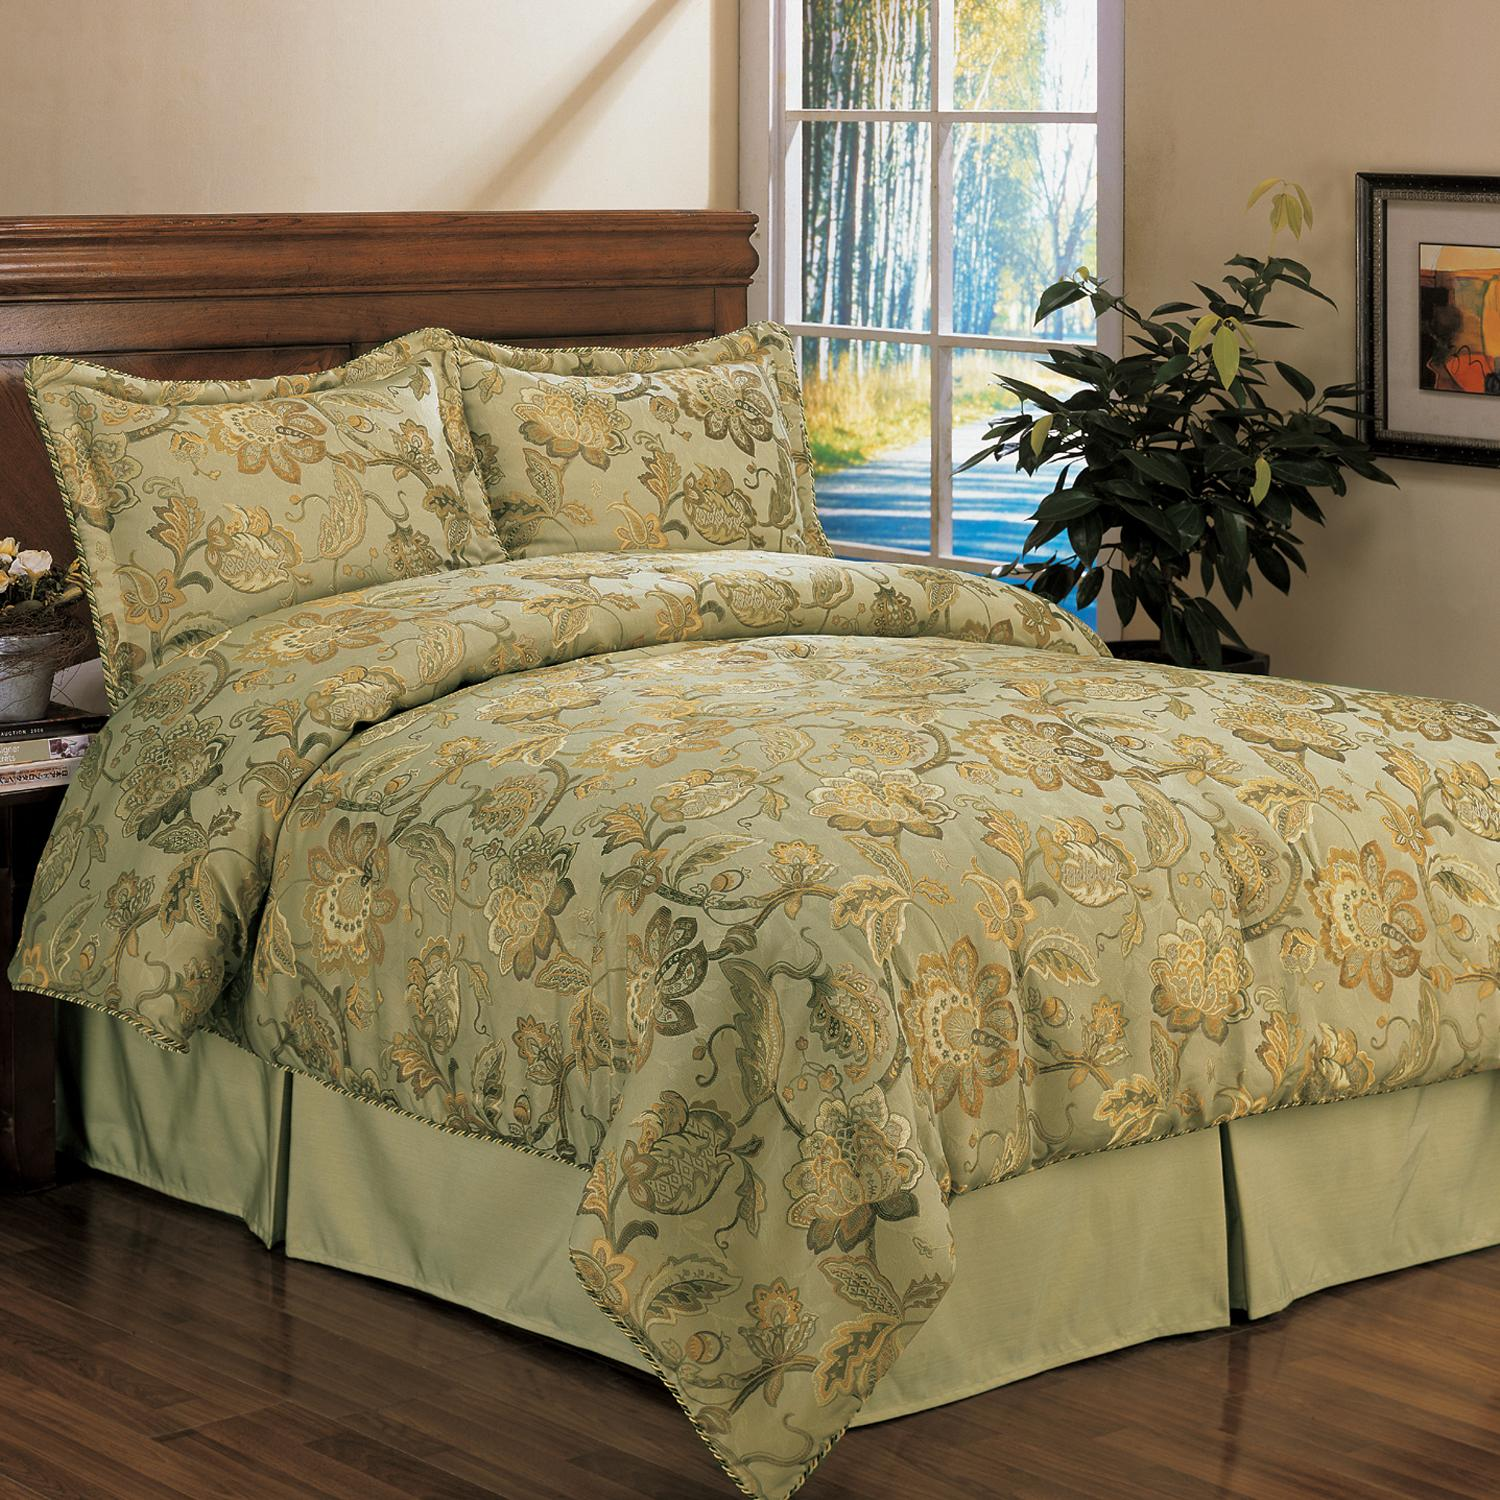 Serenade Spring 4 Piece Queen Size Comforter Set